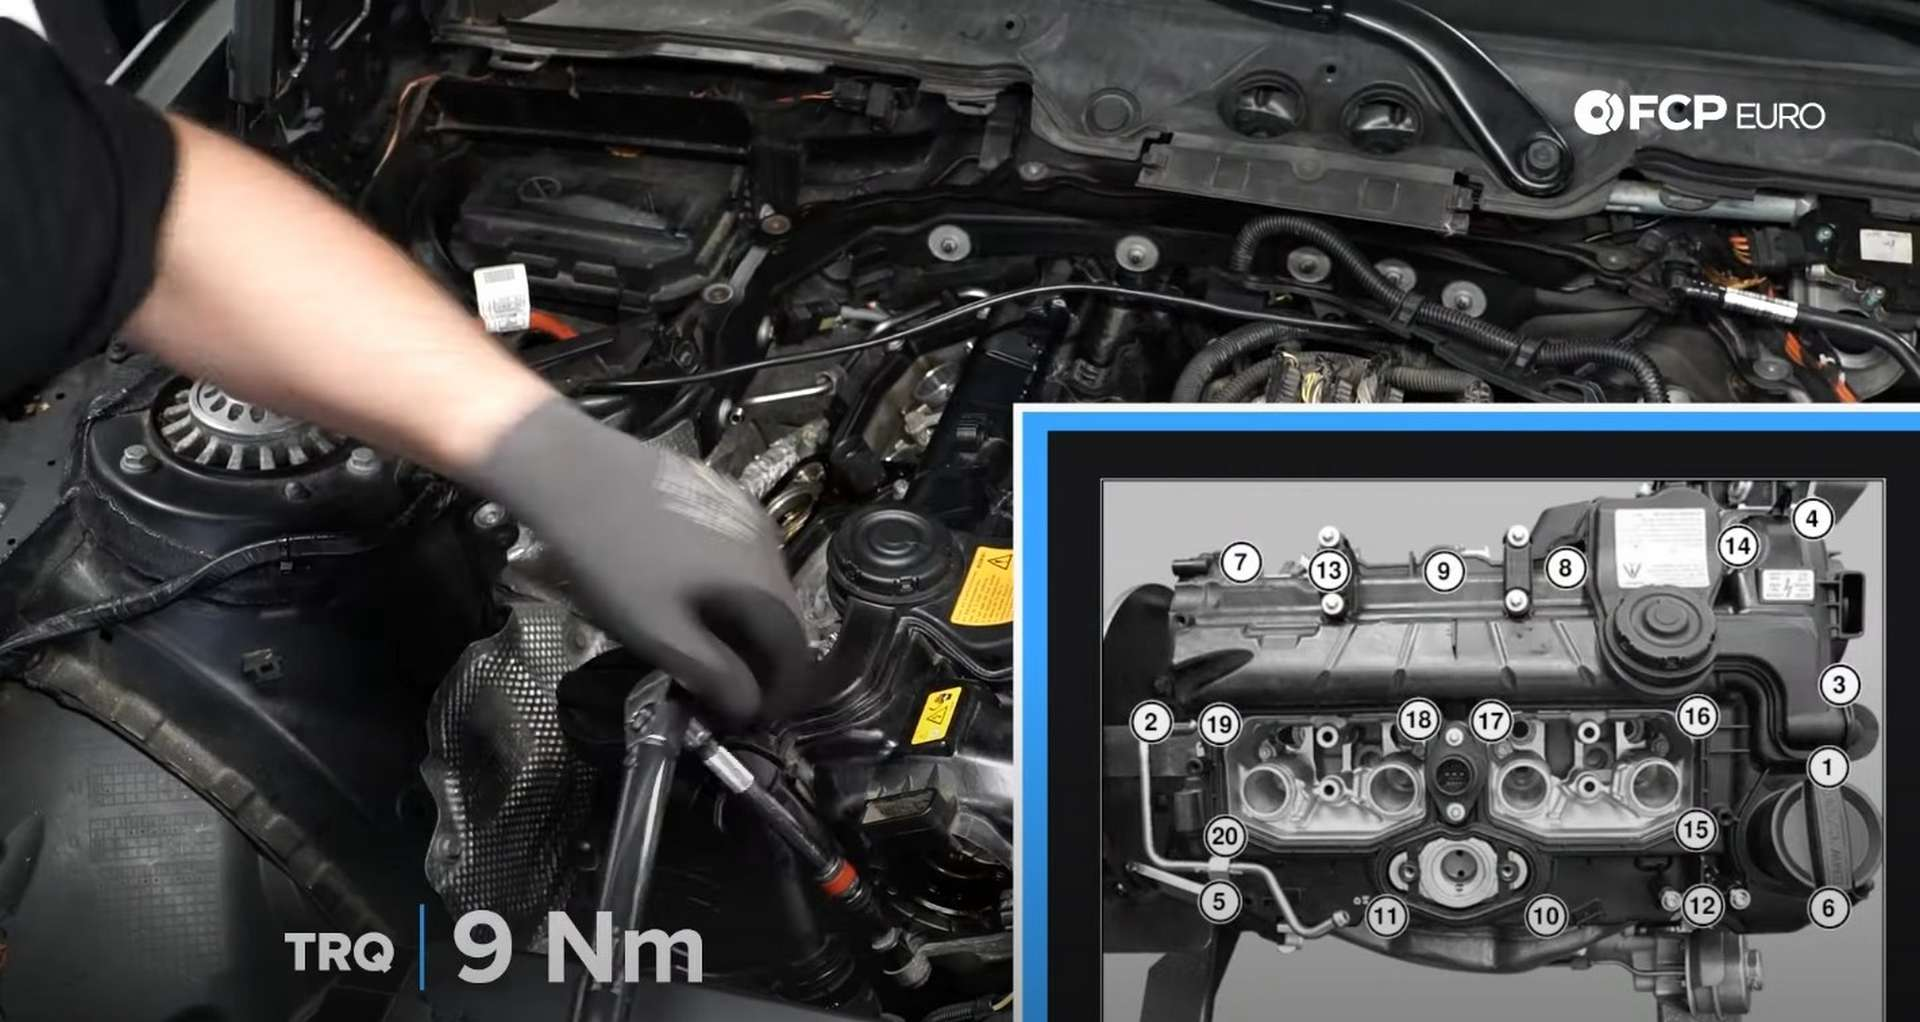 28-DIY-BMW-F30-Valve-Cover-Replacement_Replacing-Valve-Cover